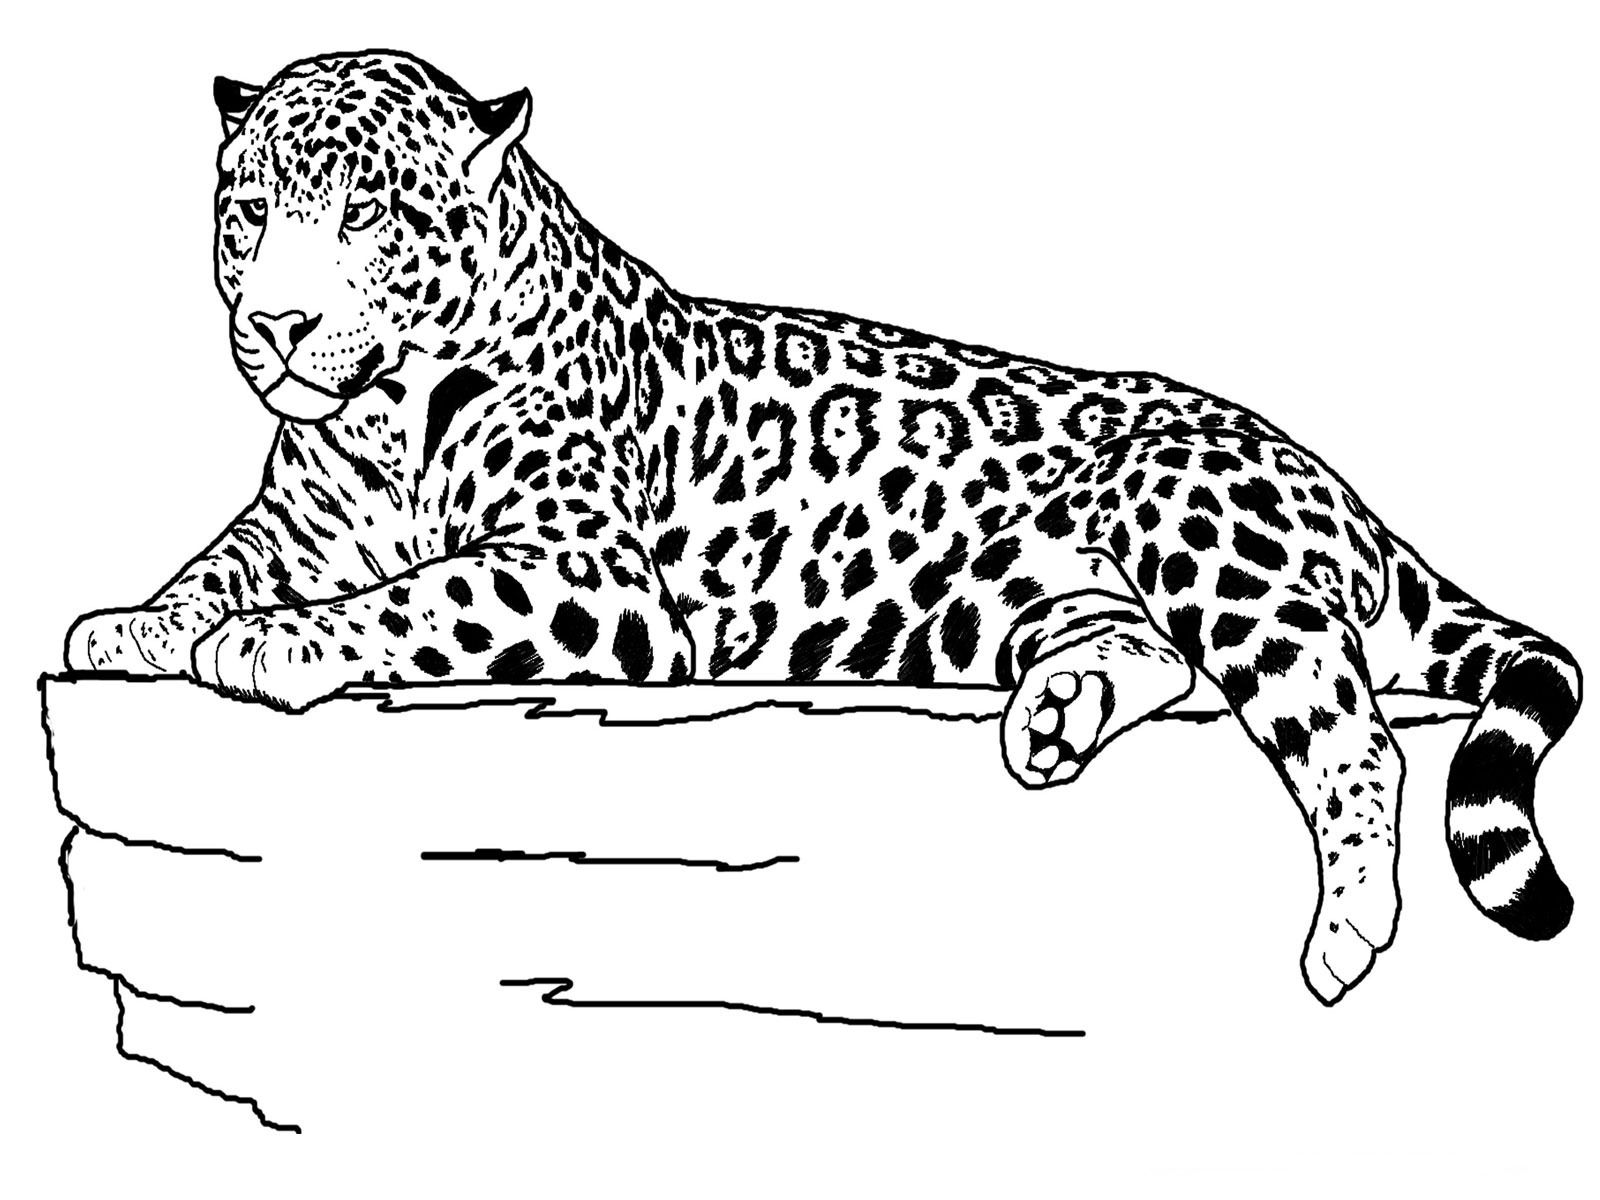 Coloring pitchers of animals - Zoo Animal Coloring Pages Also Available Are Farm Animals All Printable